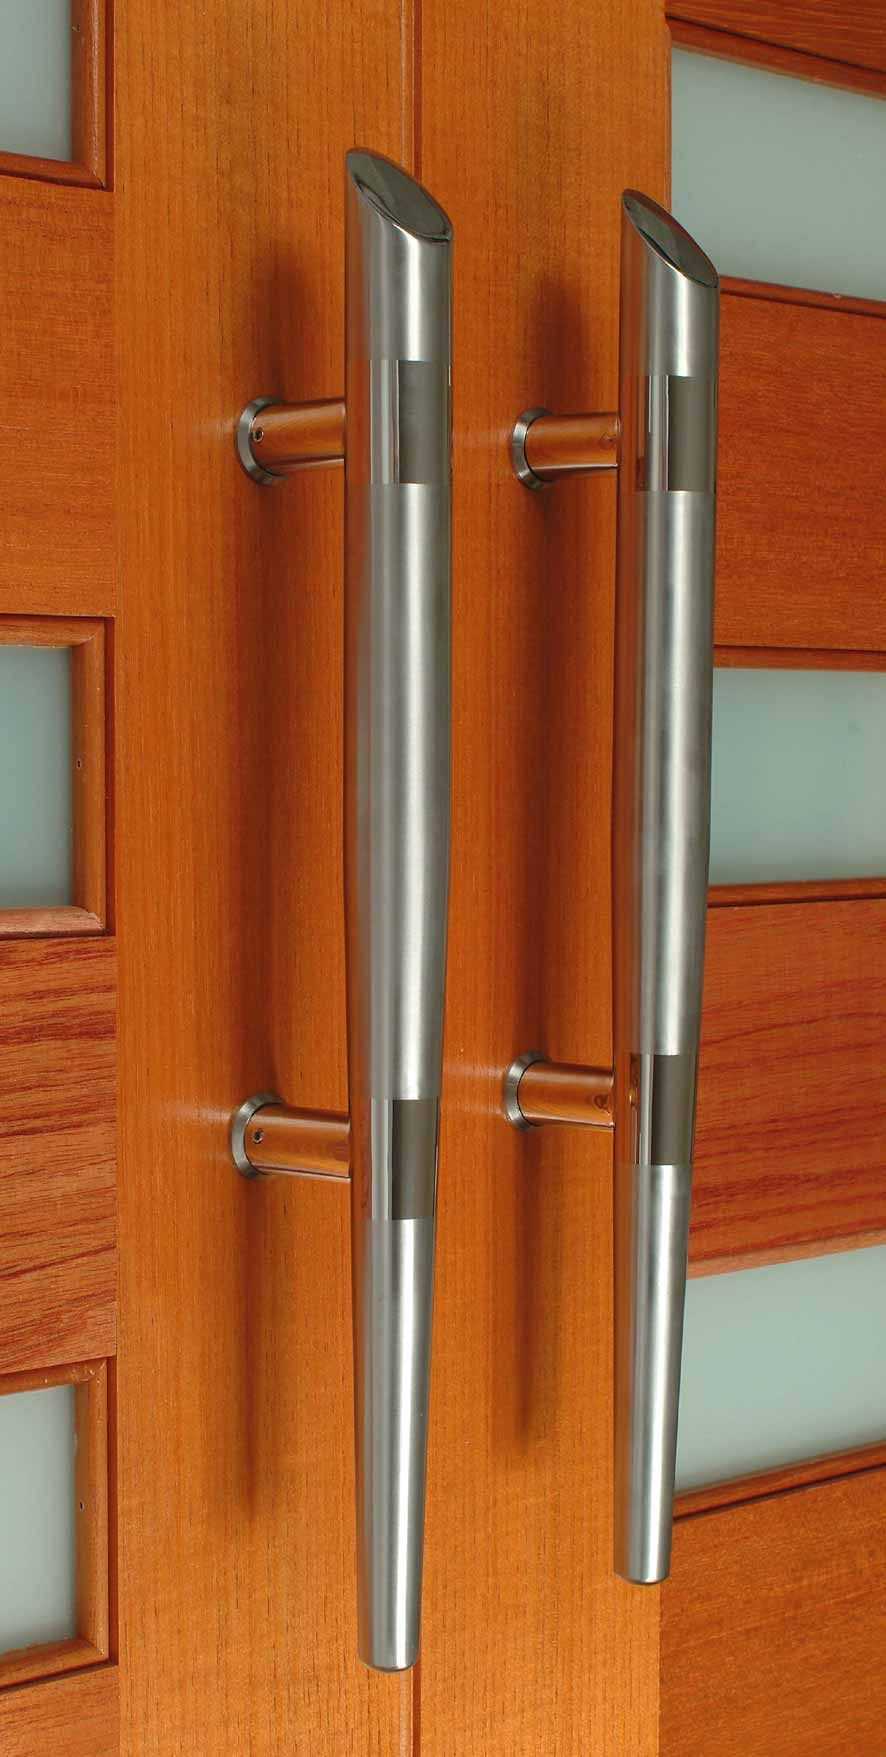 Olympus | Front Door Handles for your Home or Office. | Pinterest ...